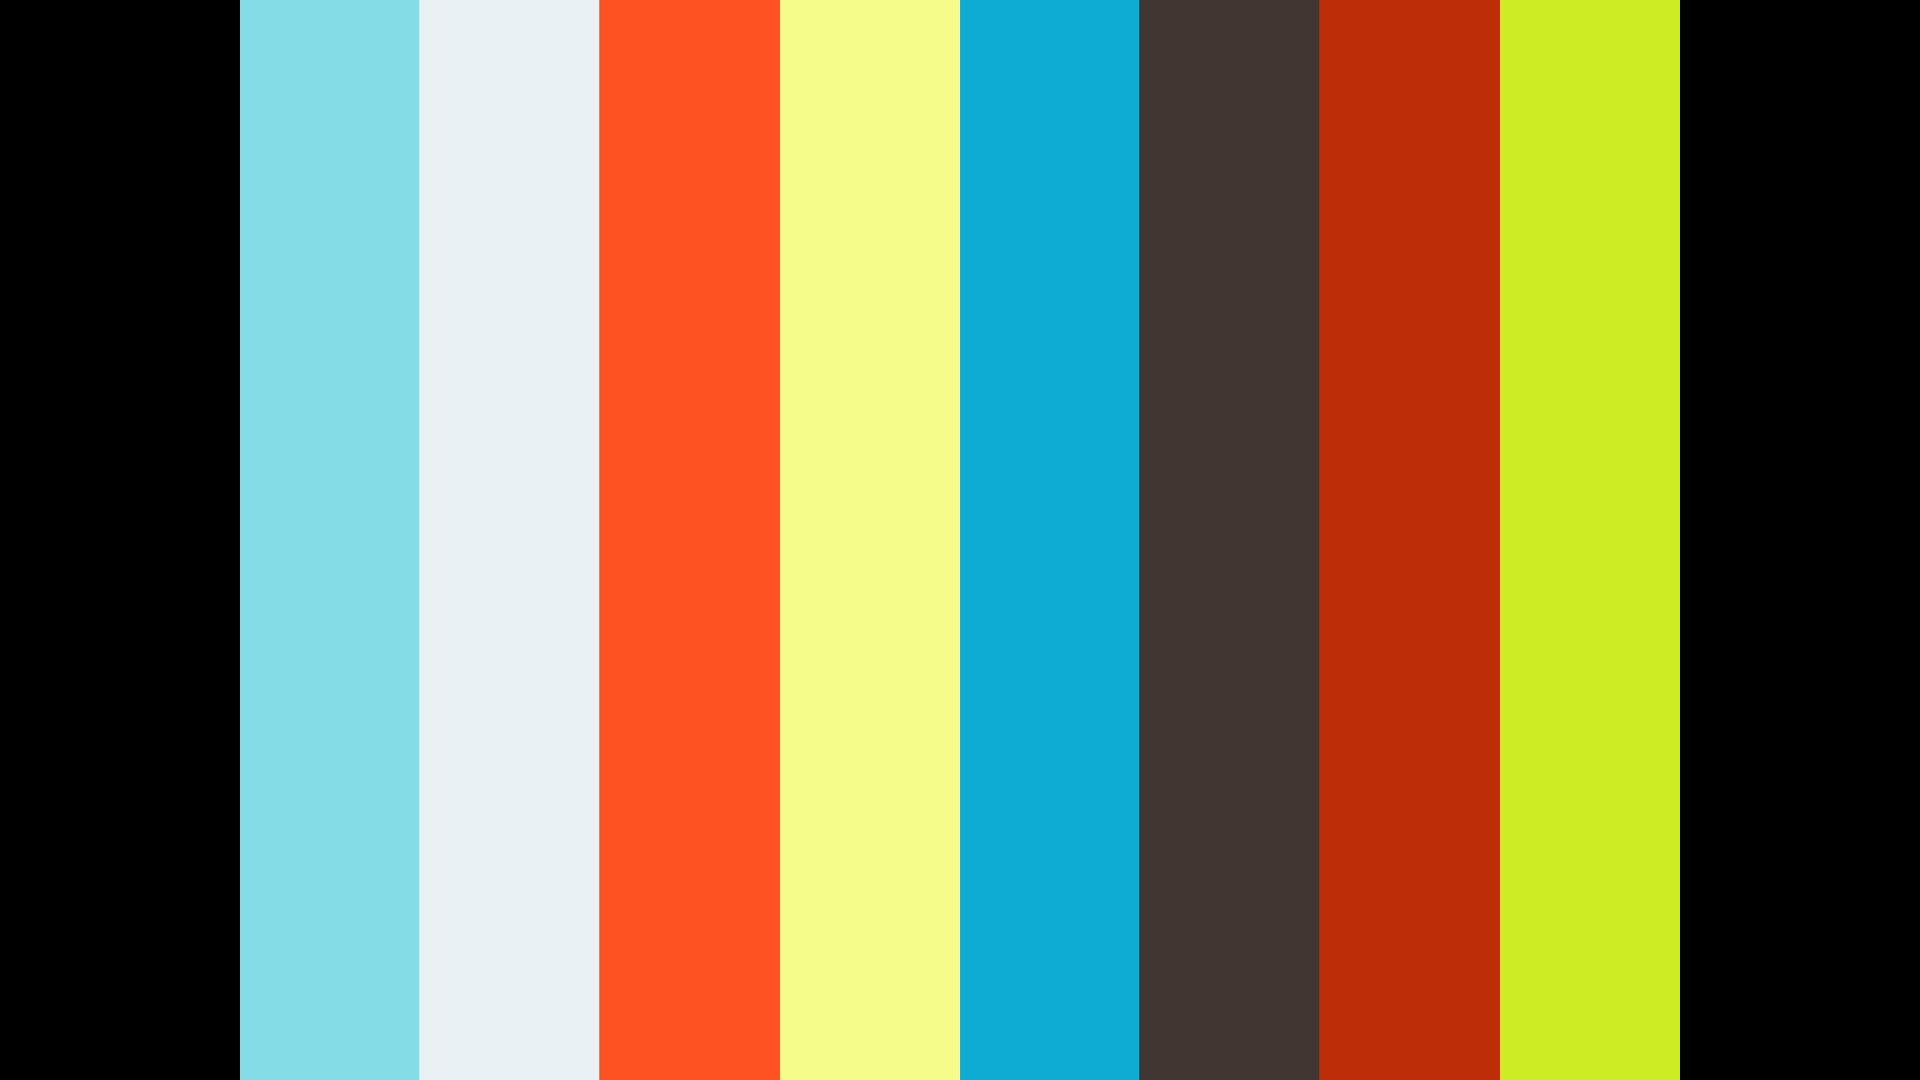 Introduce Explaining Variable in Swift